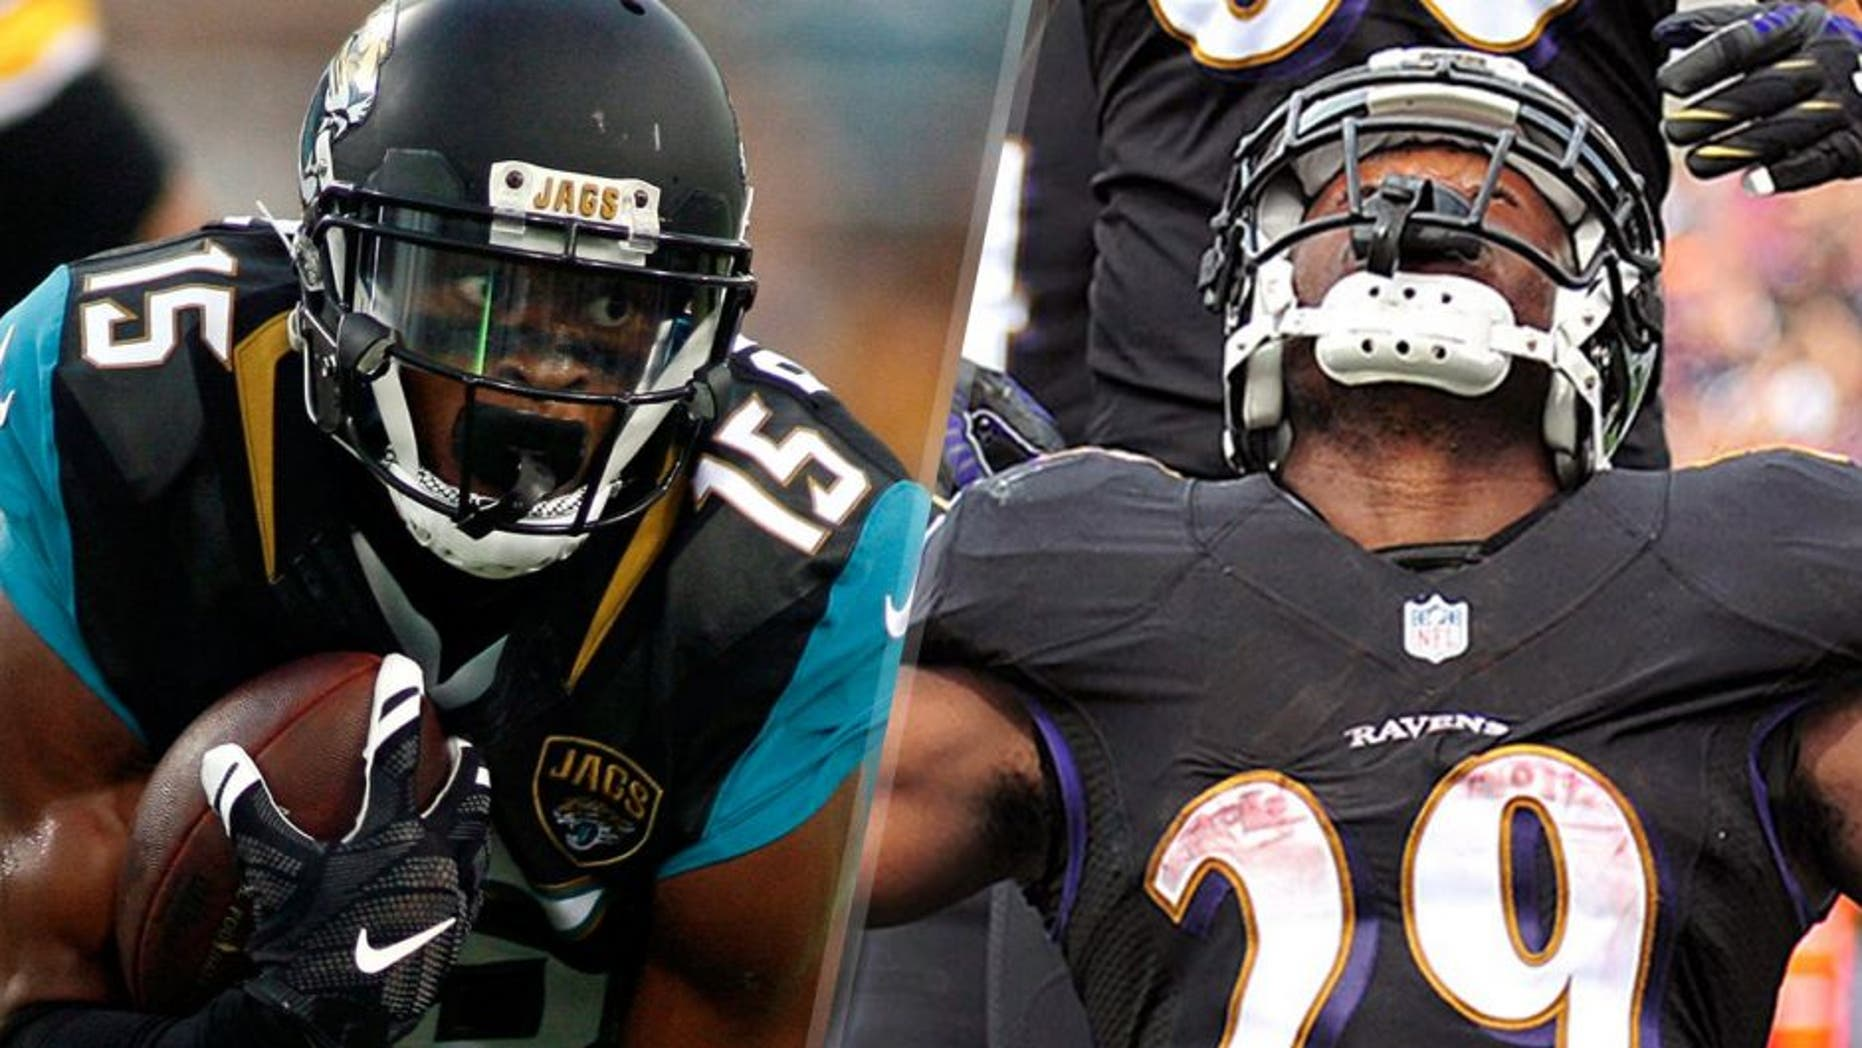 Aug 14, 2015; Jacksonville, FL, USA; Jacksonville Jaguars wide receiver Allen Robinson (15) runs in the first quarter of a preseason NFL football game against the Pittsburgh Steelers at EverBank Field. Mandatory Credit: Phil Sears-USA TODAY Sports Sep 28, 2014; Baltimore, MD, USA; Baltimore Ravens running back Justin Forsett (29) celebrates after scoring a touchdown in the second quarter against the Carolina Panthers at M&T Bank Stadium. Mandatory Credit: Evan Habeeb-USA TODAY Sports